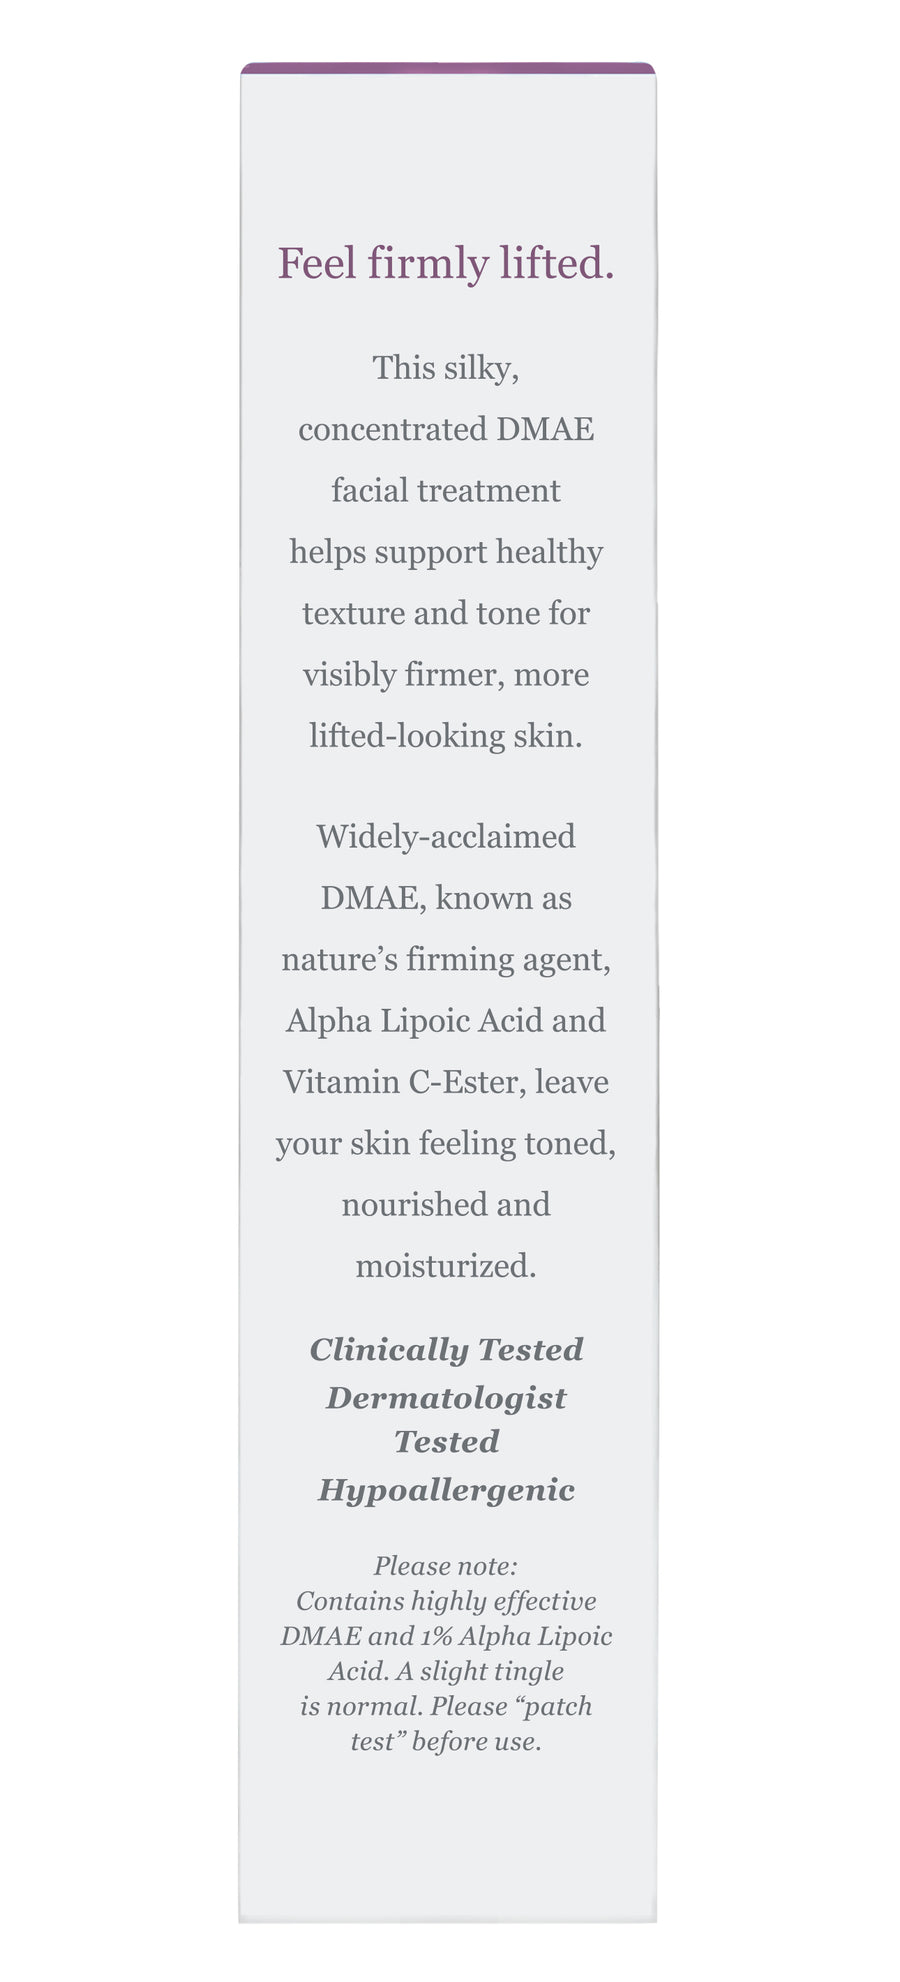 Firming DMAE Serum Carton Back Panel